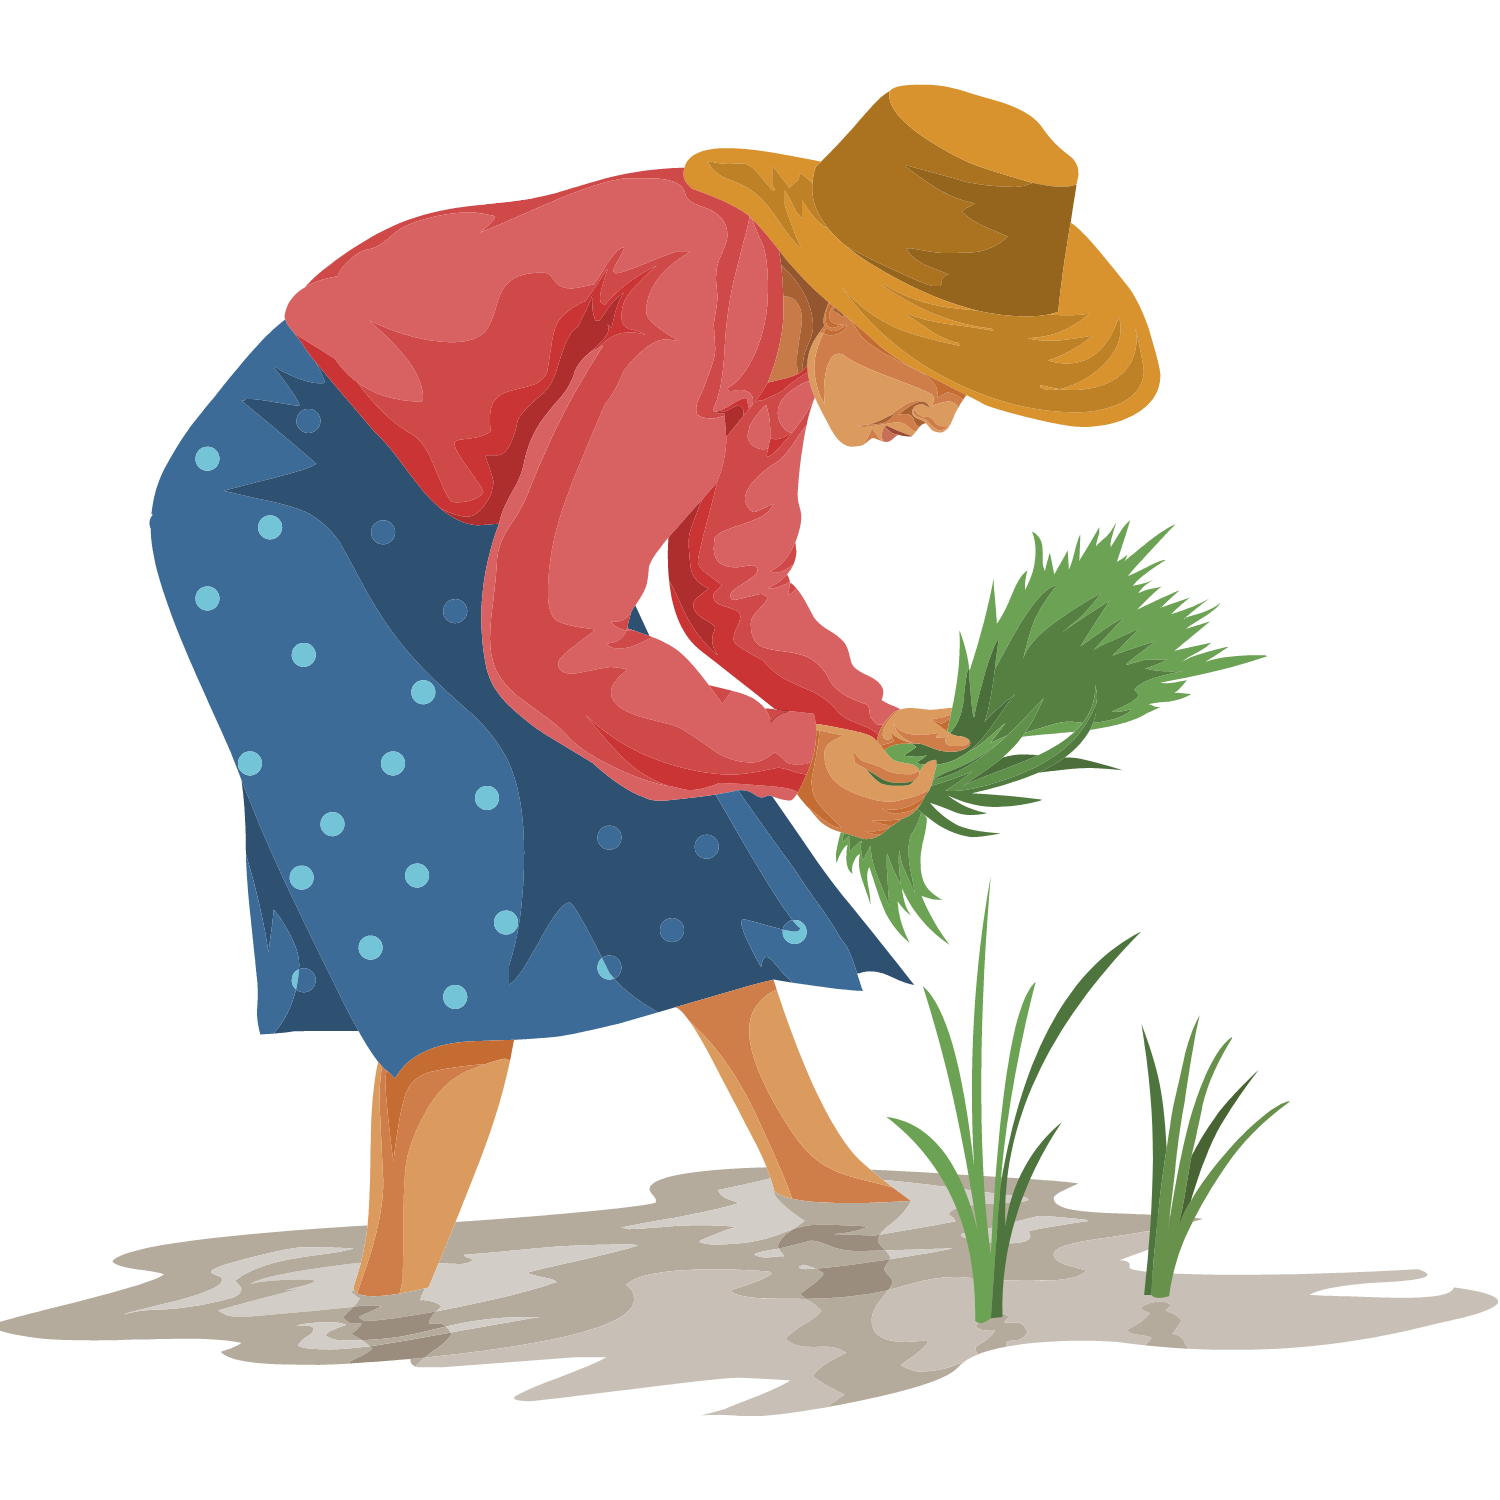 Illustration of a woman planting trees.